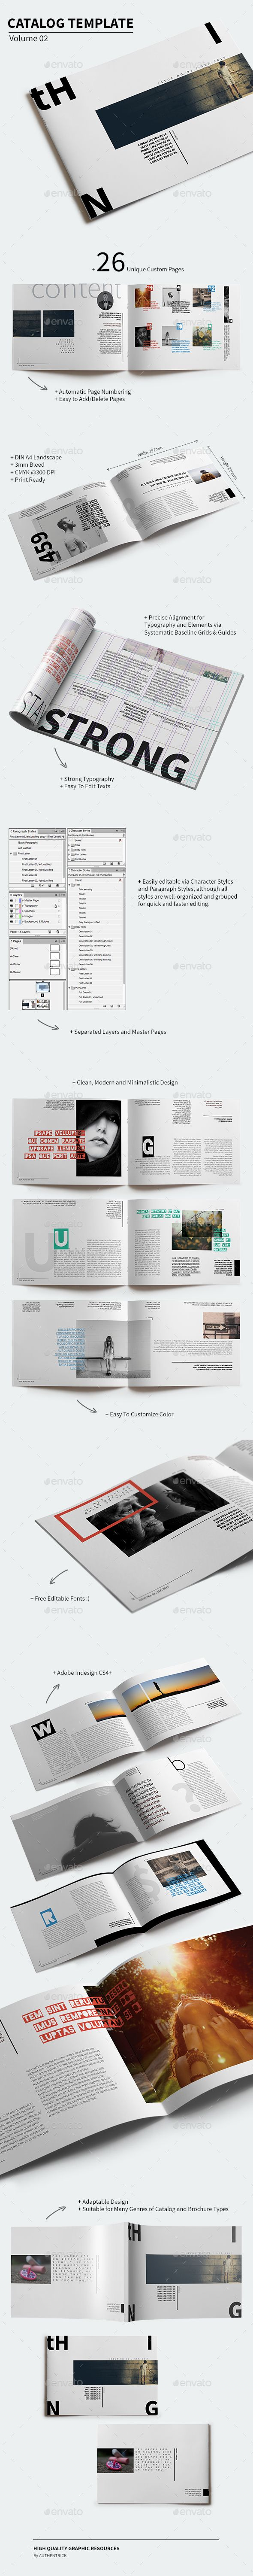 Catalog Template  Volume 02 — InDesign INDD #indesign #simple • Available here → https://graphicriver.net/item/catalog-template-volume-02/13114873?ref=pxcr